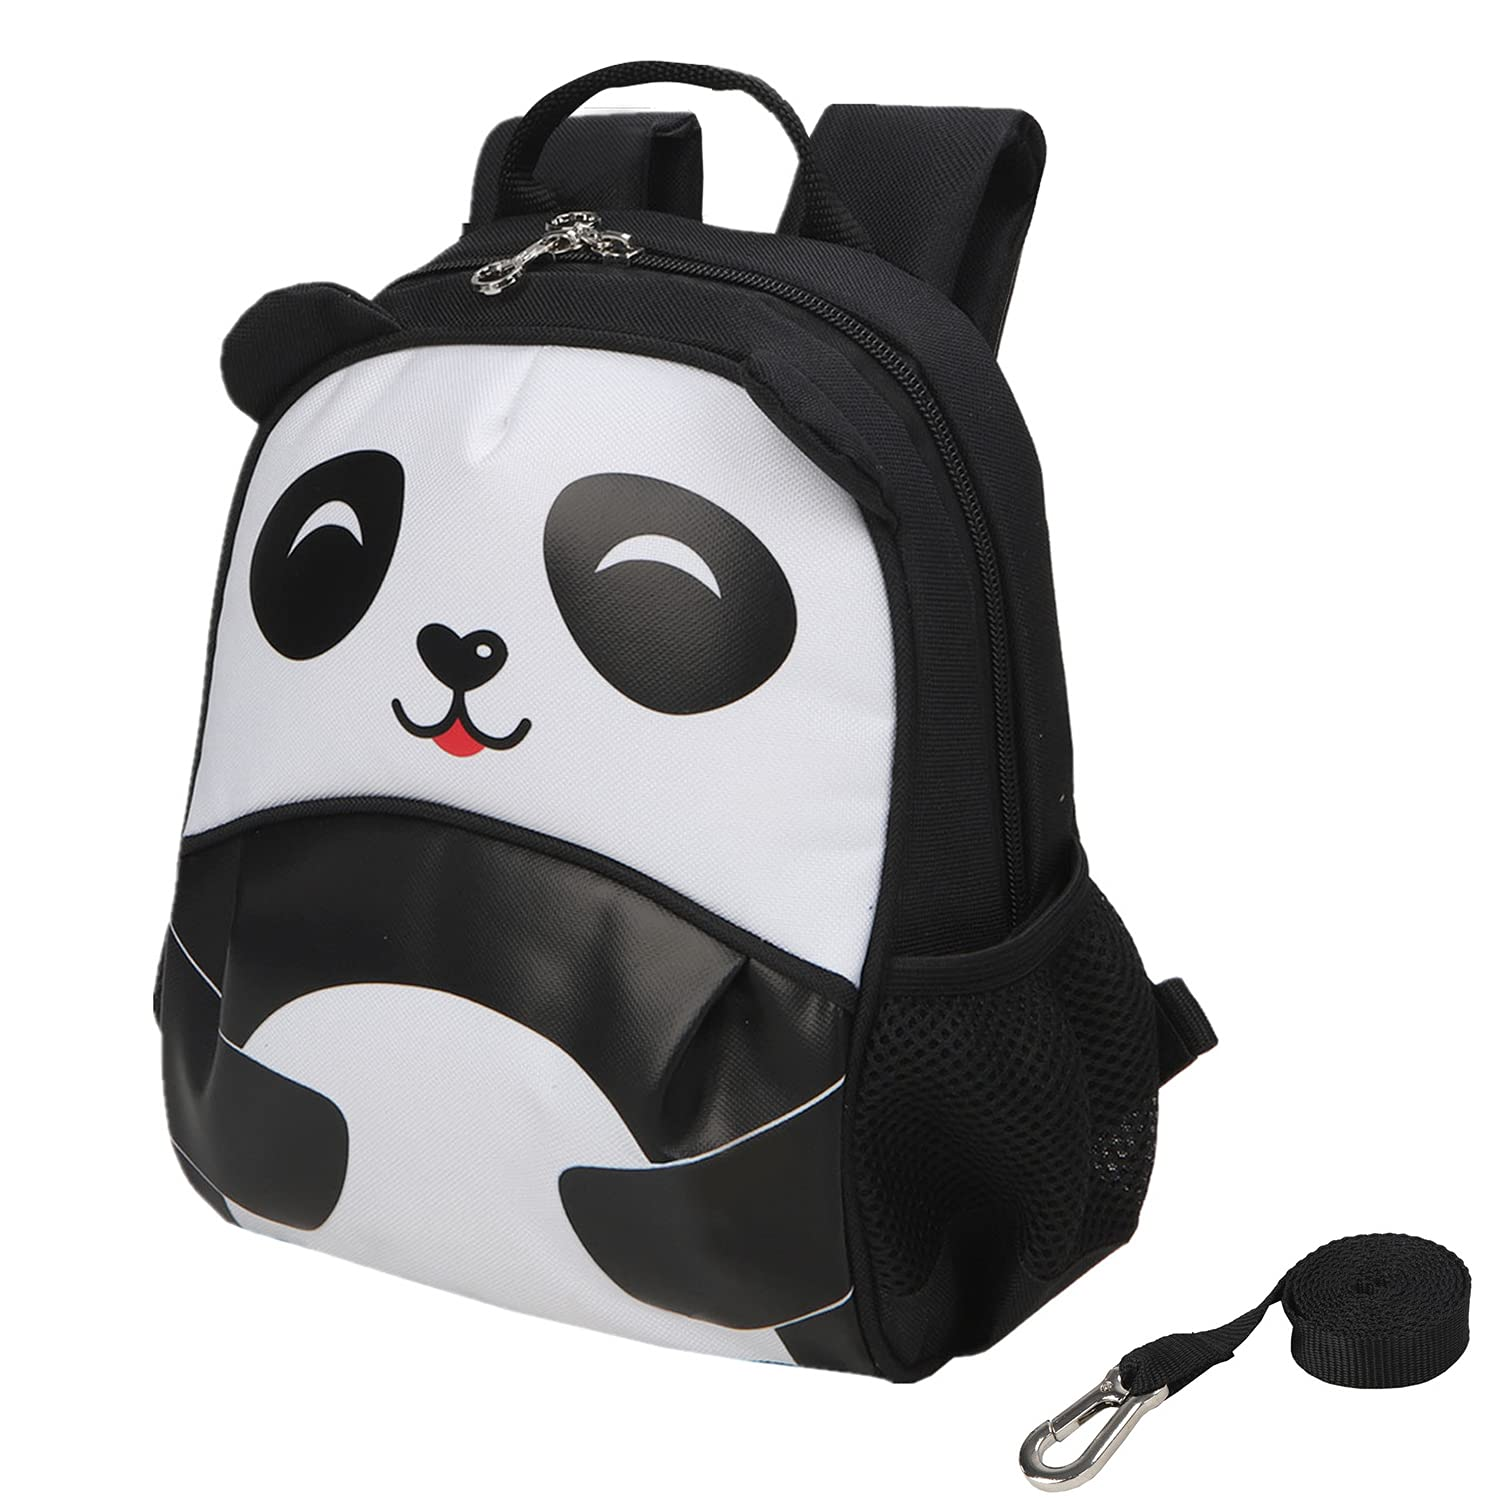 Yodo Kids Insulated Toddler Backpack with Safety Harness Leash and Name Label - Playful Preschool Lunch Boxes Carry Bag, Panda